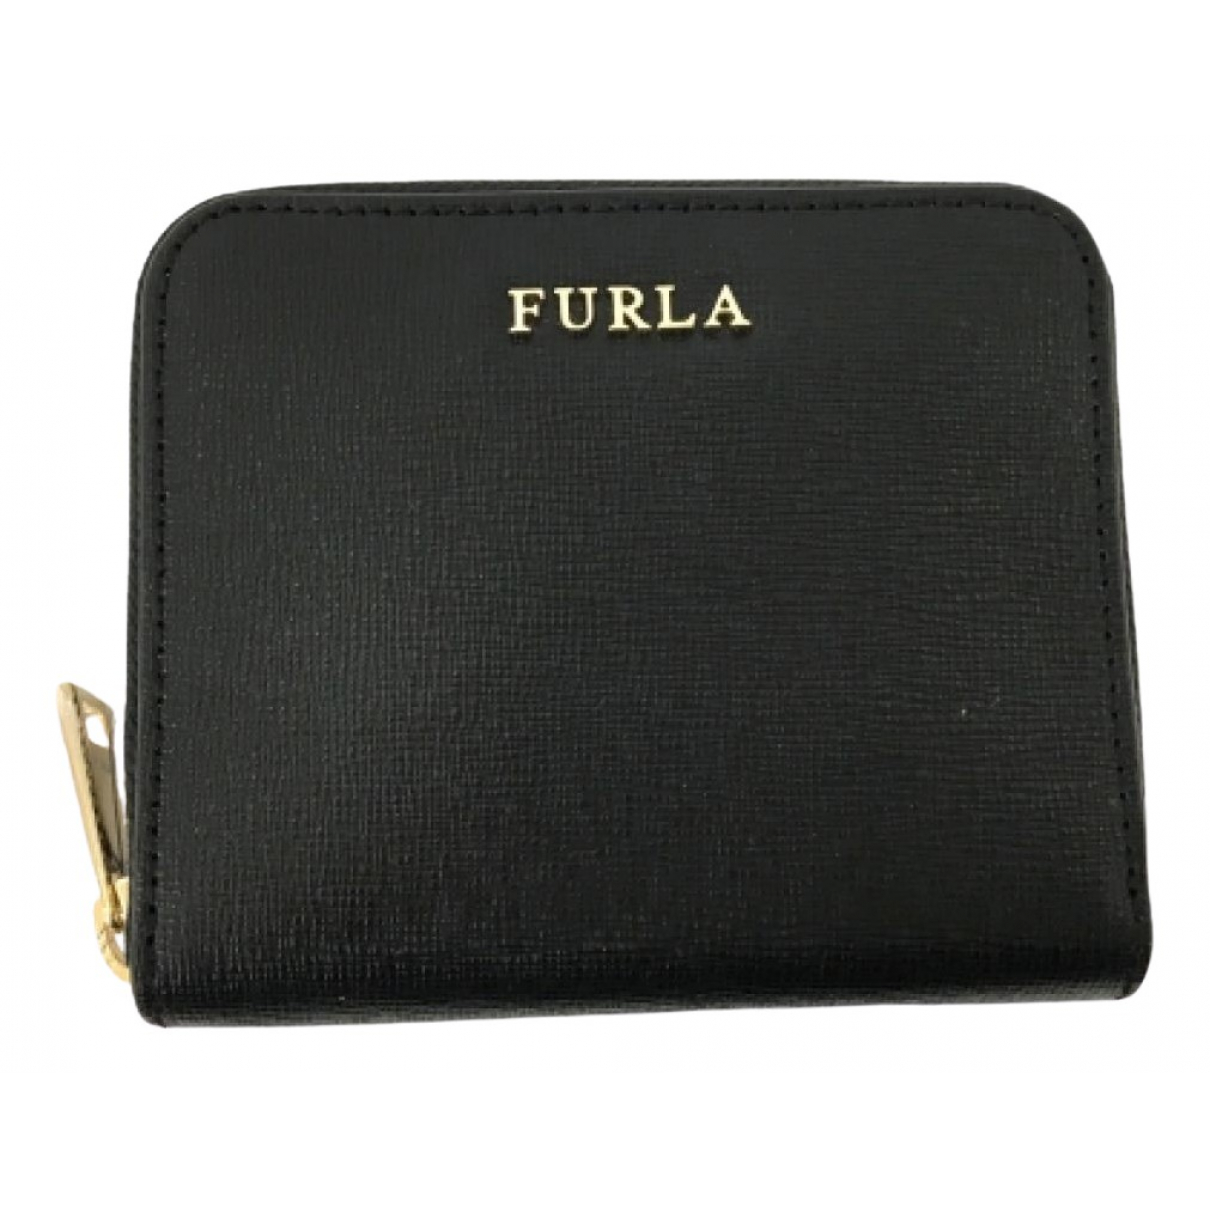 Furla \N Black Leather wallet for Women \N